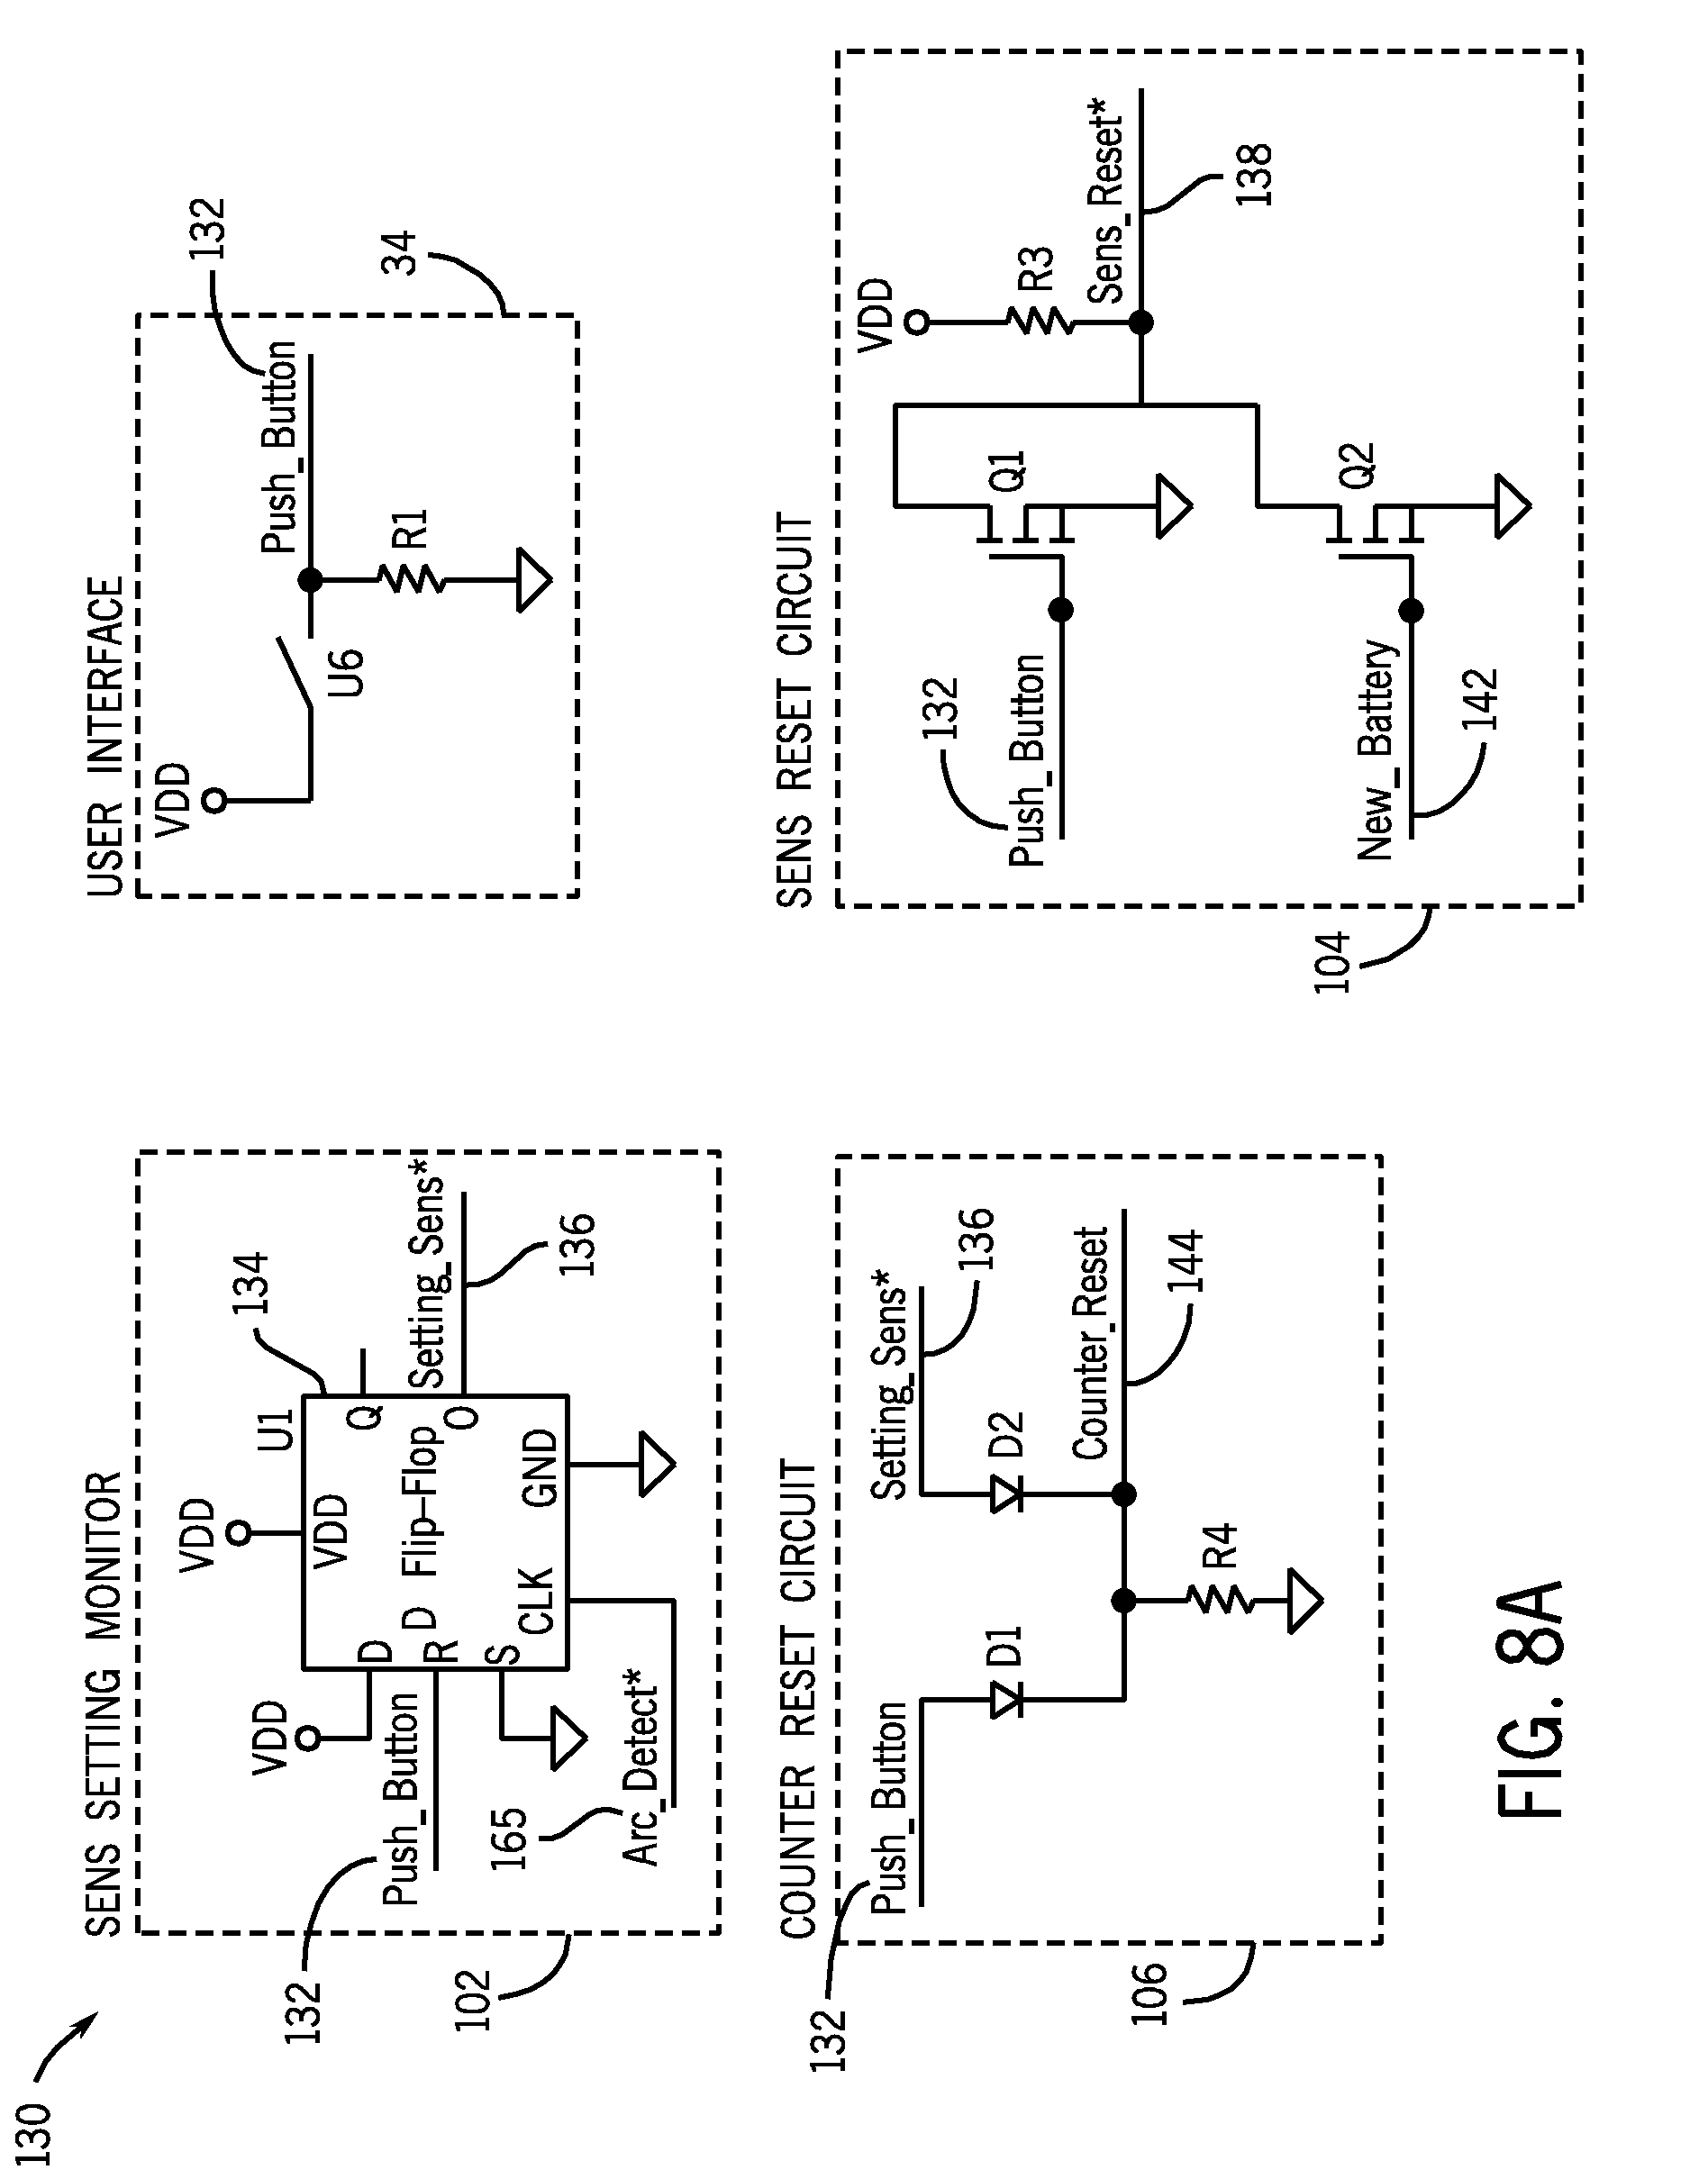 Patent Us20090094721 Automated Sensitivity Setting For An Auto Battery Slide Switch As Well Dynamic Microphone Pre Circuit Diagram Drawing